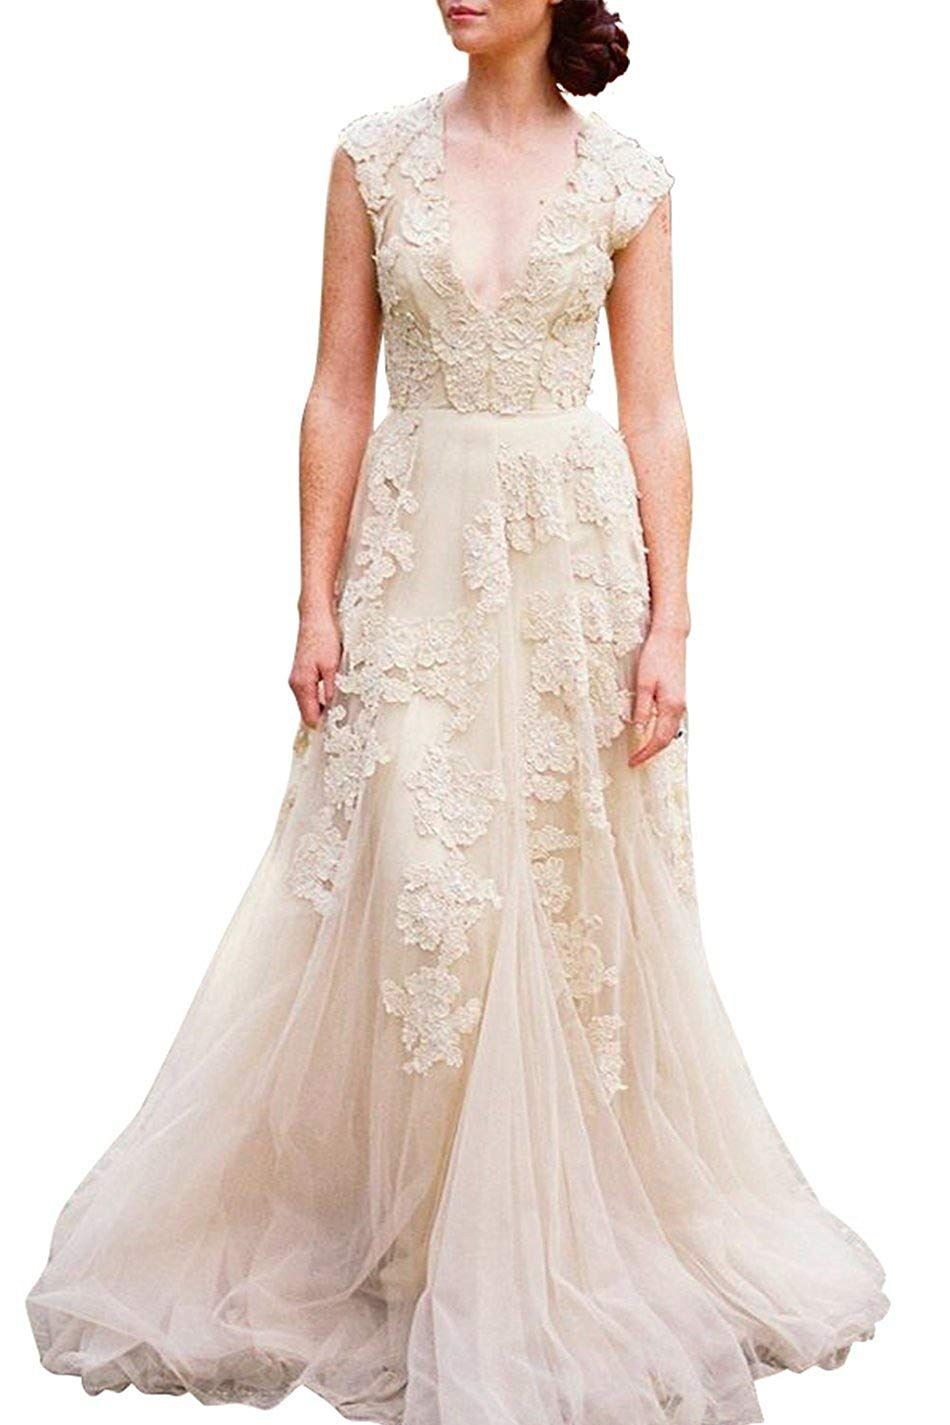 83fa188e5 Ruolai ASA Bridal Women's Vintage Cap Sleeve Lace Wedding Dress